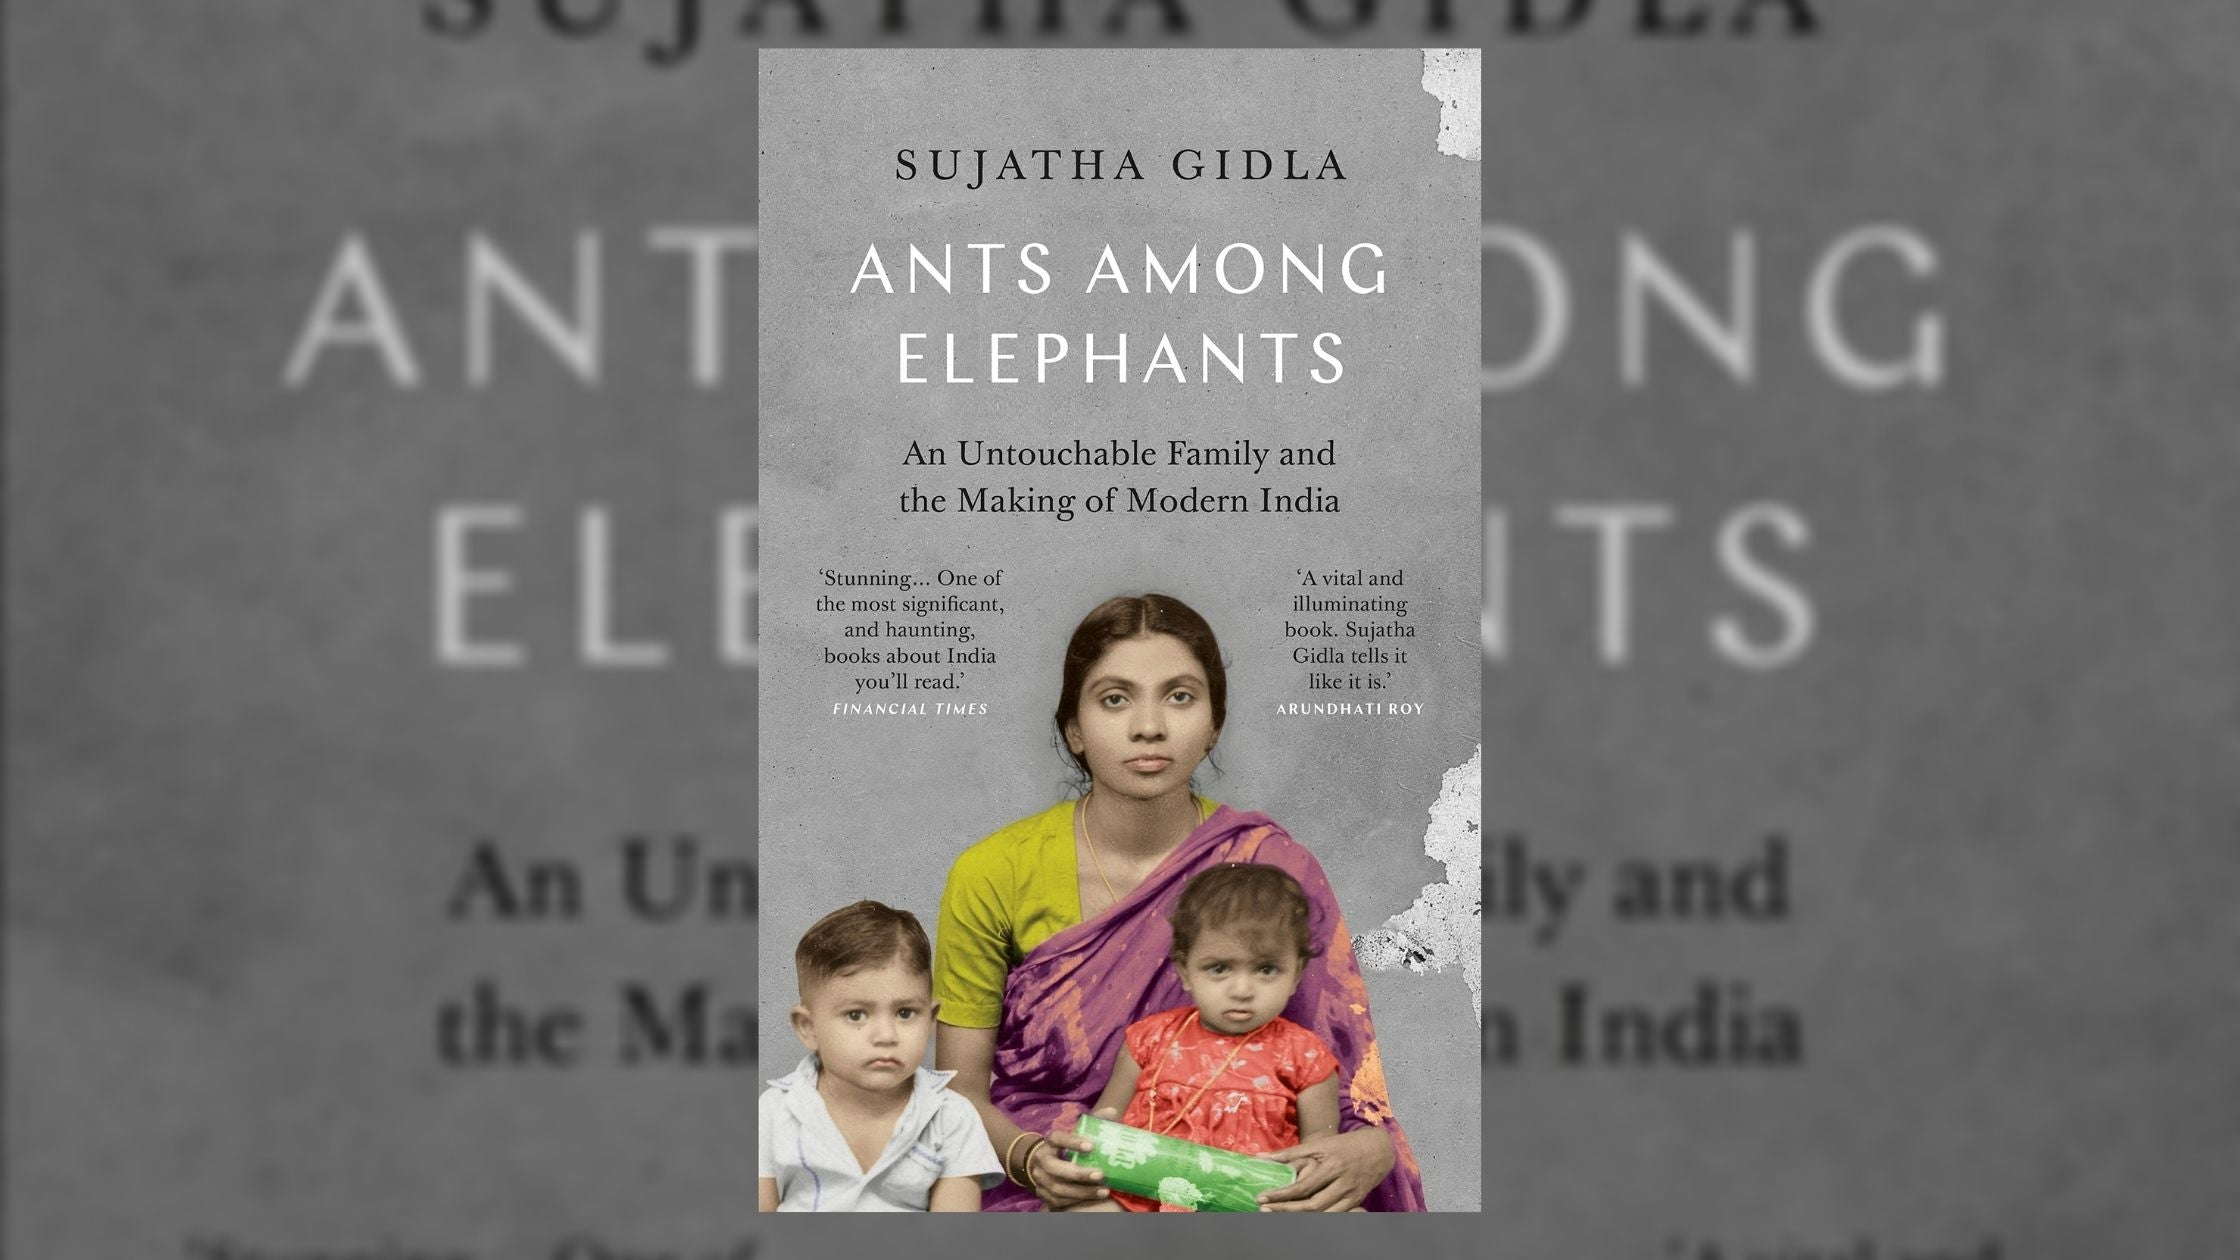 Dalit Literature and Ants Among Elephants by Sujatha Gidla: A Short Review